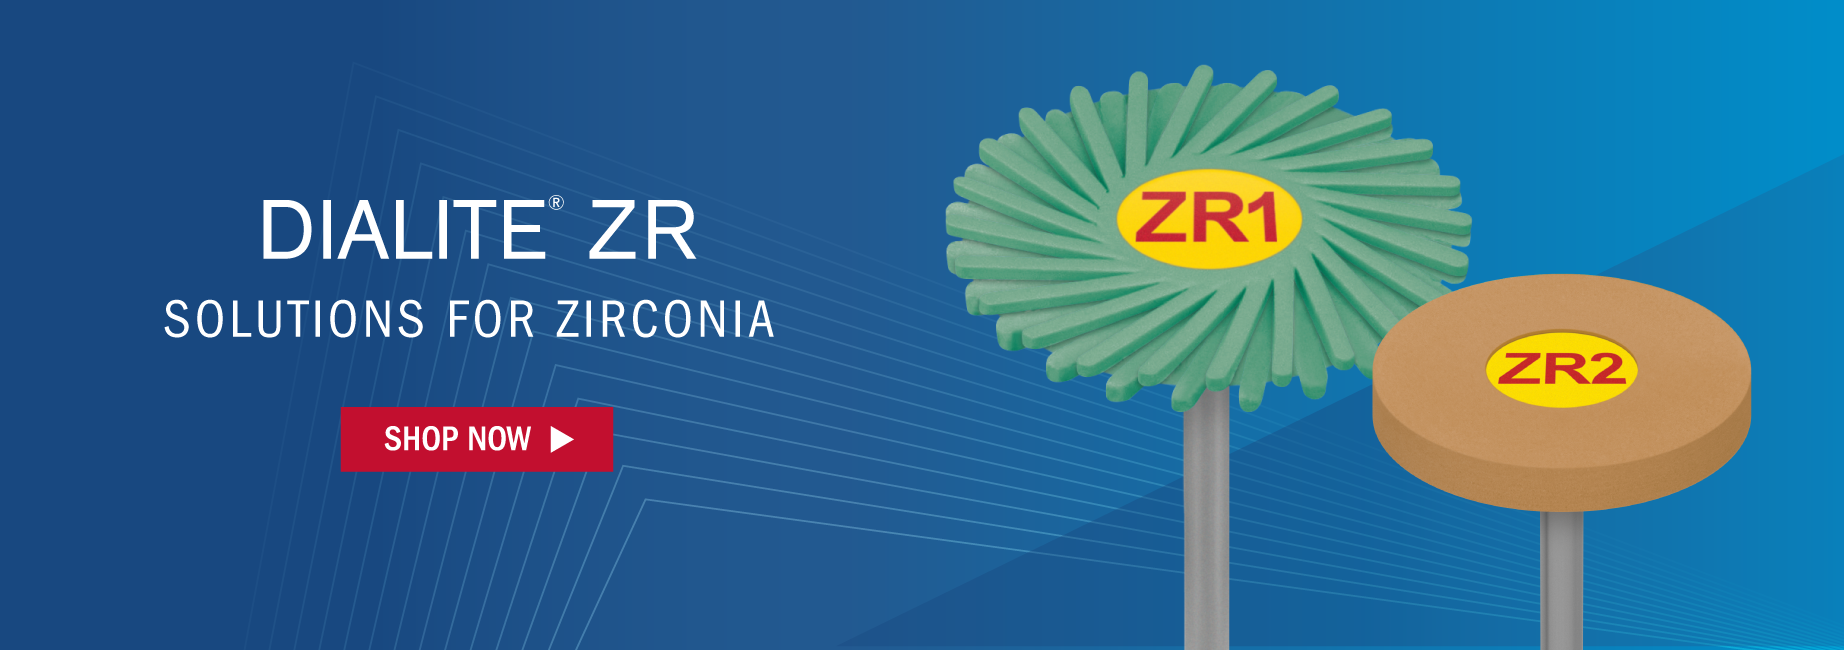 Dialite ZR: Solutions for Zirconia. Shop Now.